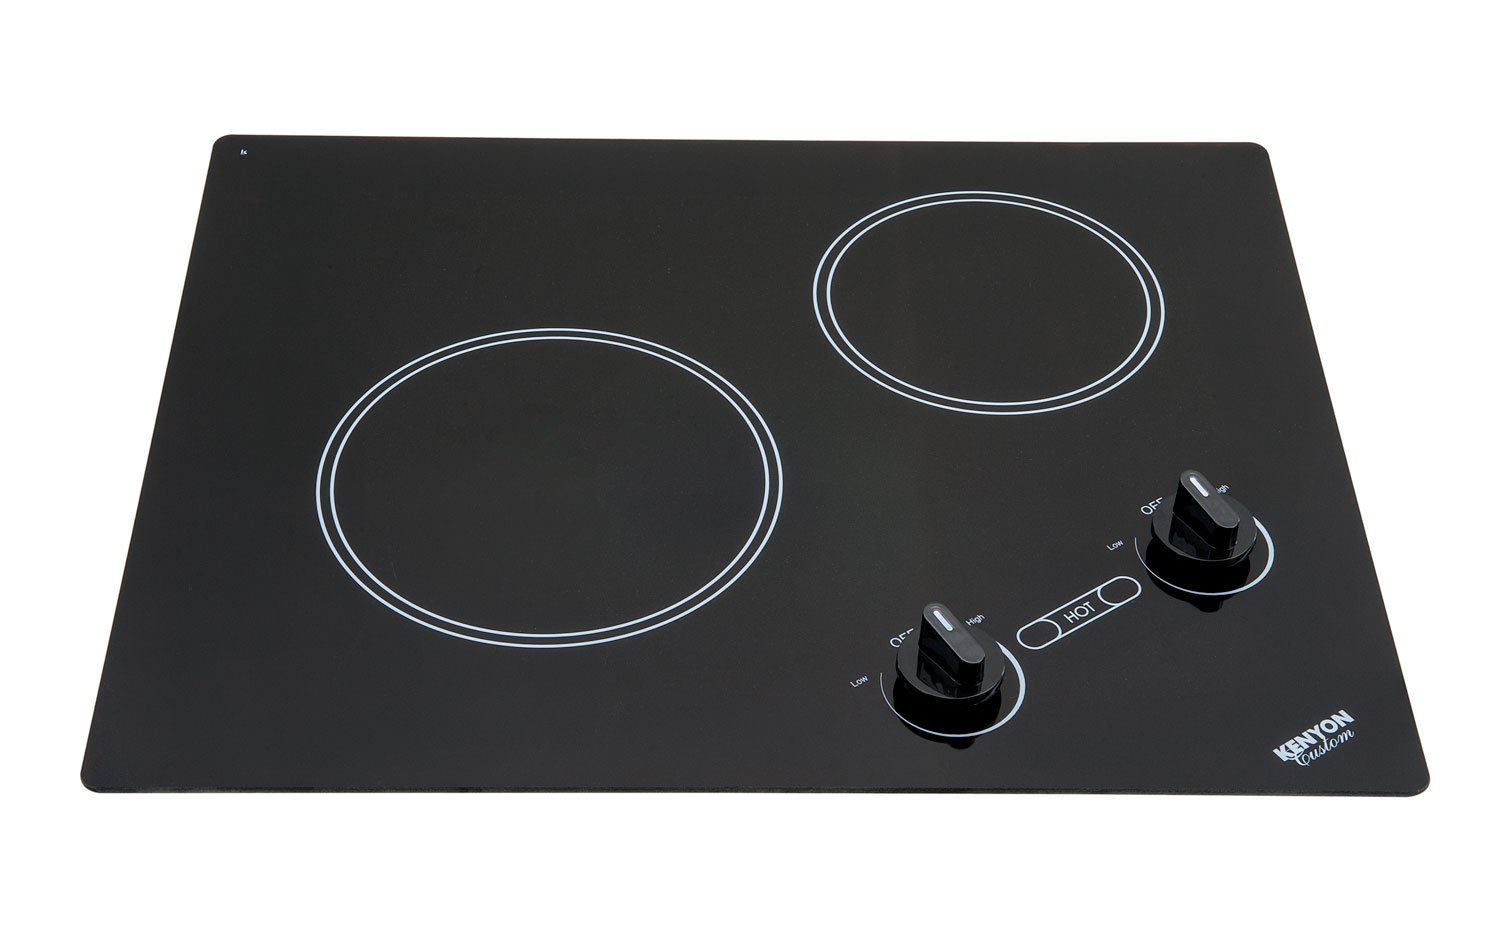 Kenyon B41604 6-1/2 and 8-Inch Arctic 2-Burner Cooktop with Analog Control UL, 240-volt, Black